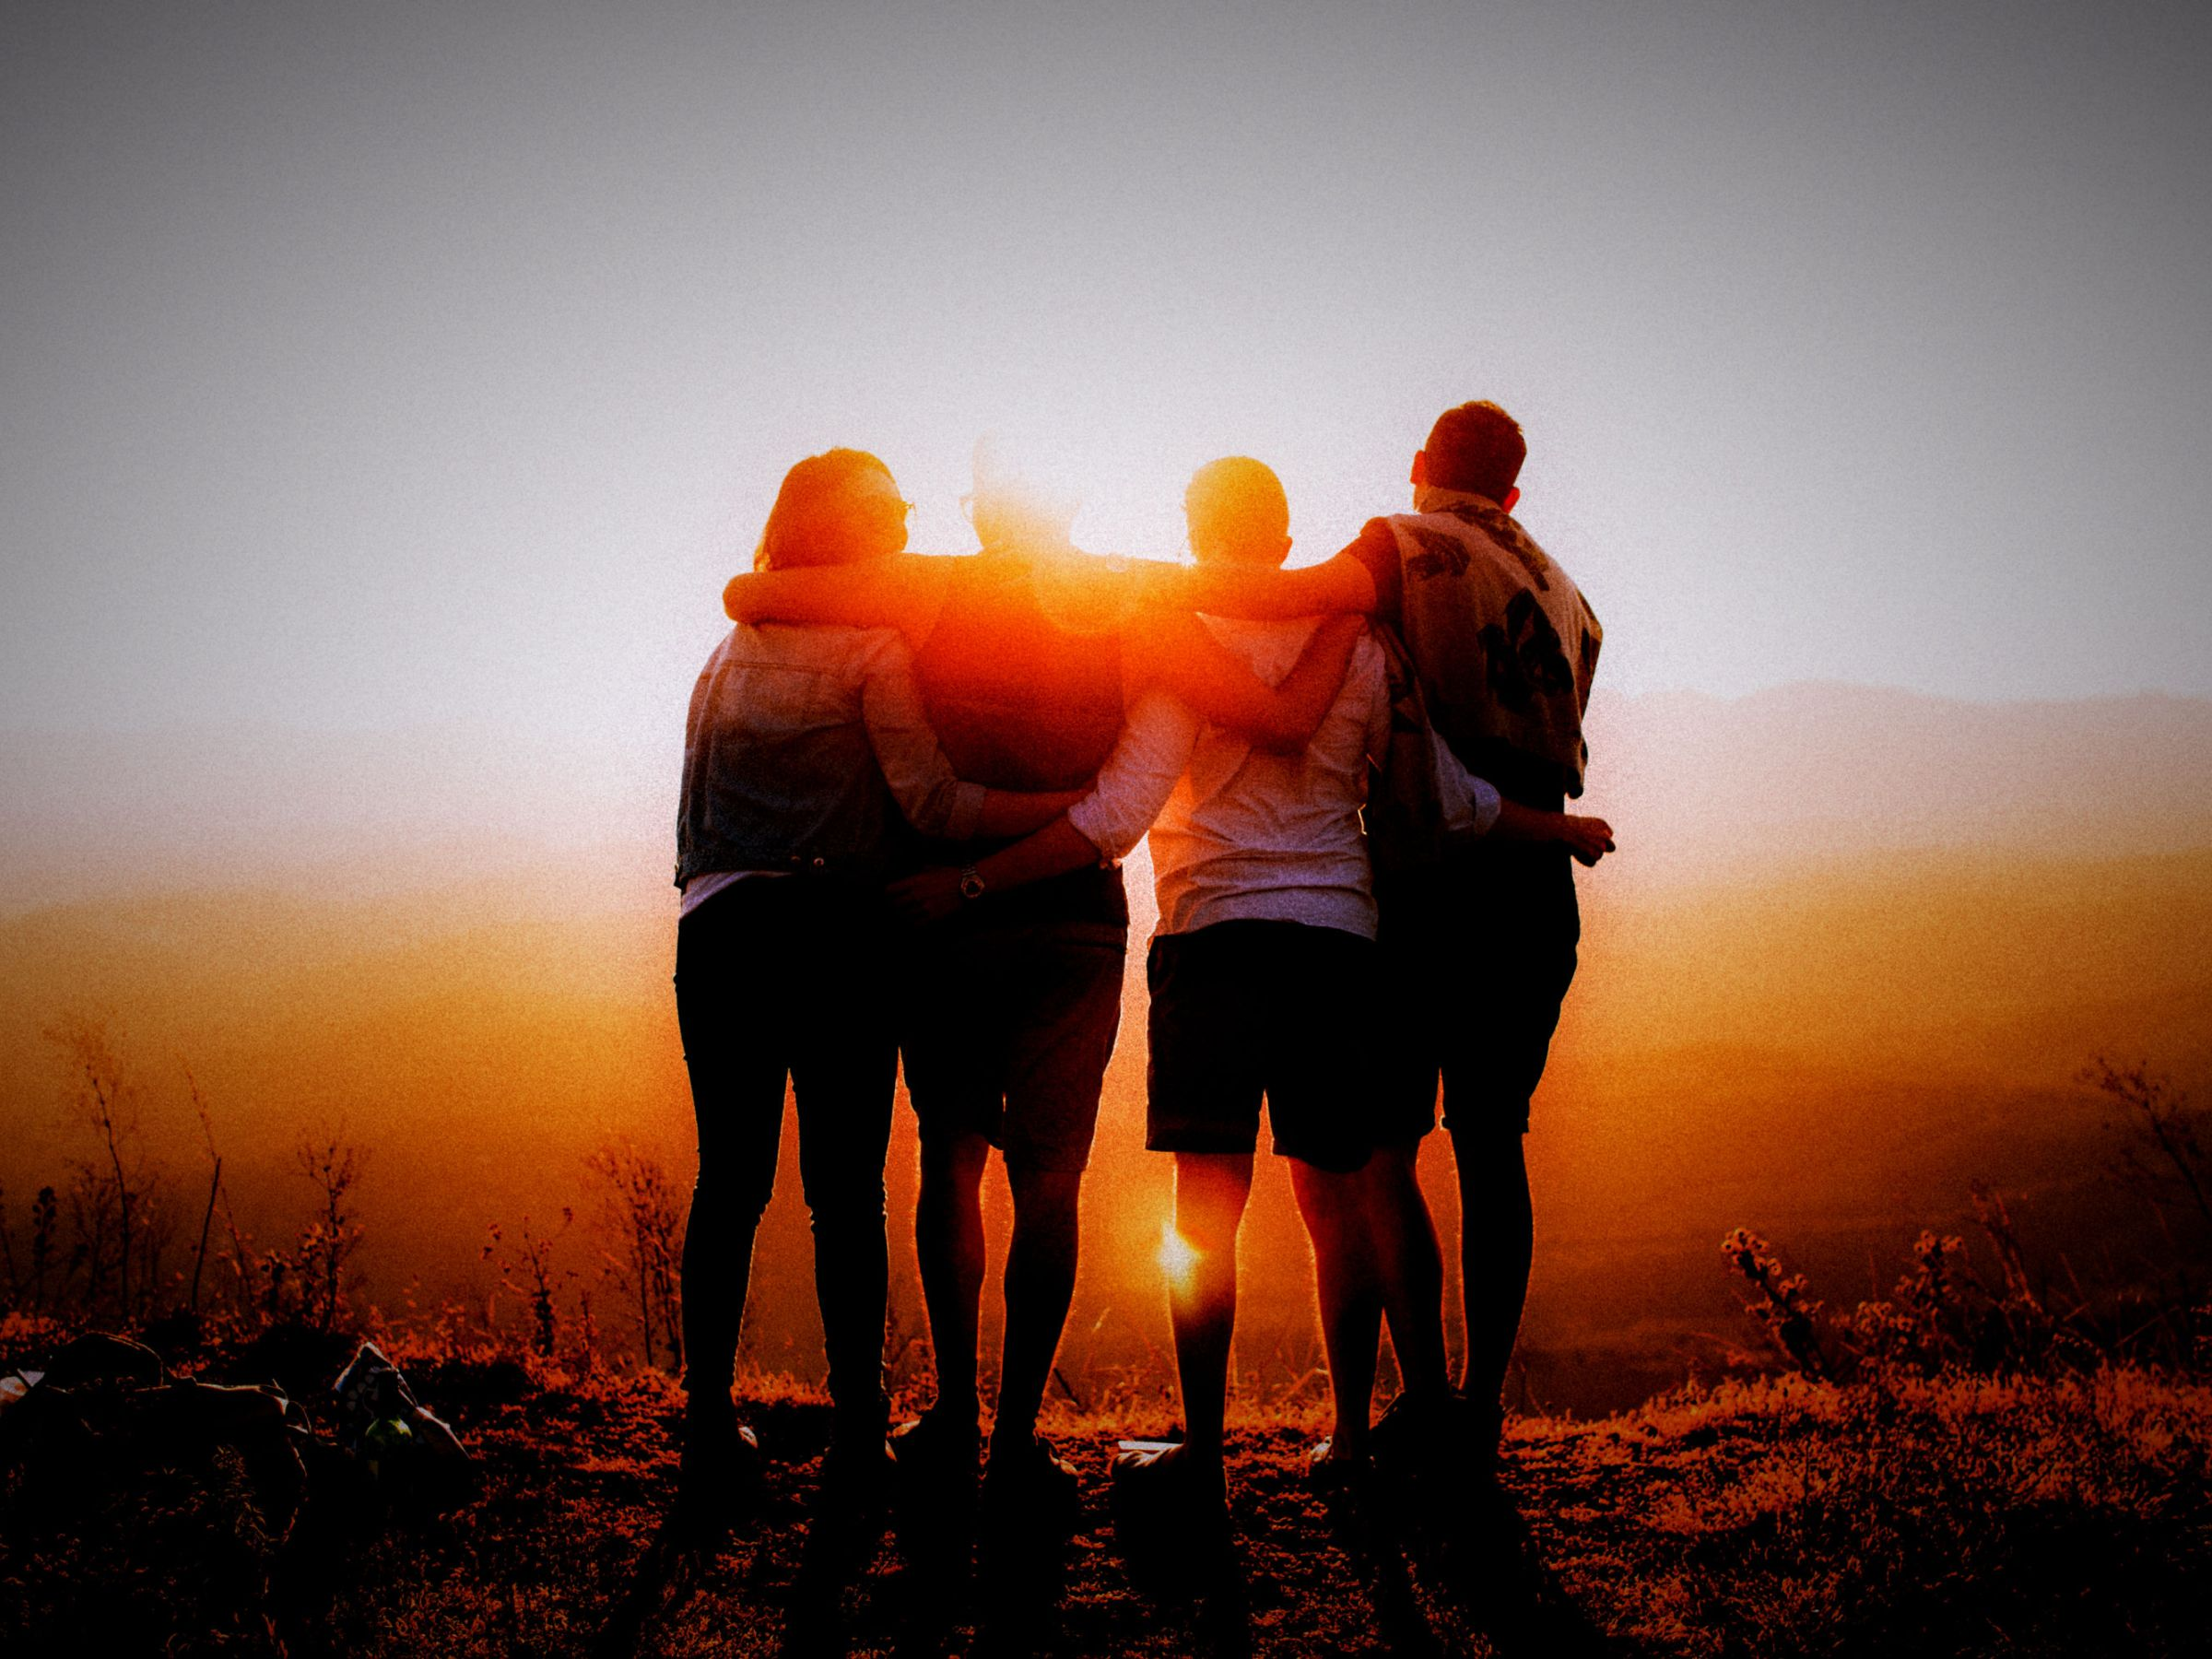 group hug at dawn